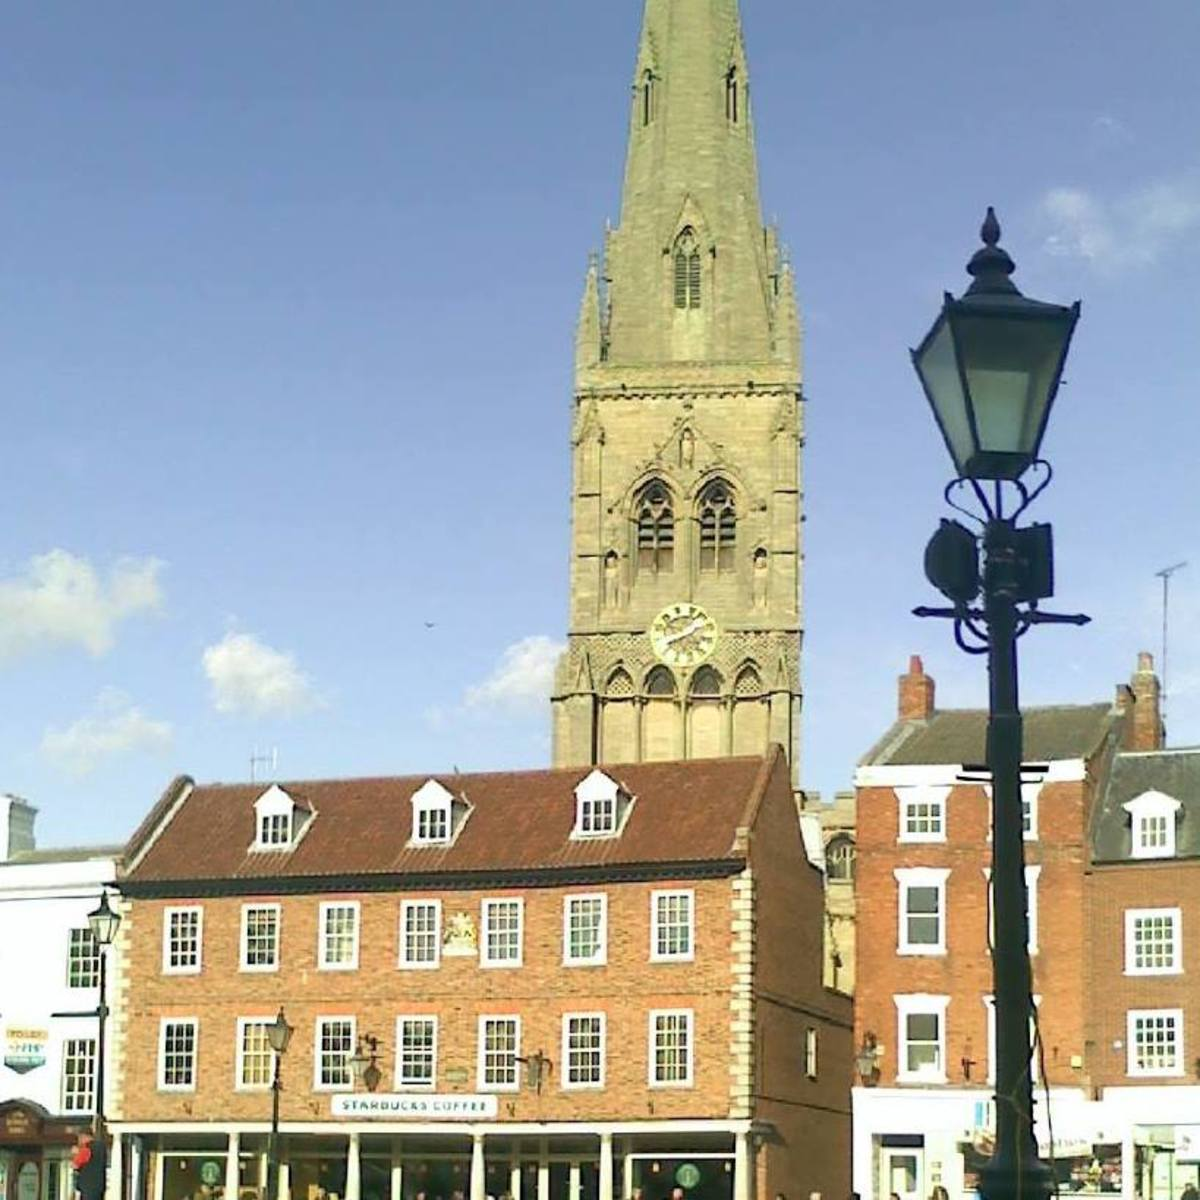 The Church of St. Mary Magdalene, locally known simply as 'the Parish Church', seen from Newark Market Place. The building centre-left is the Moot Hall.